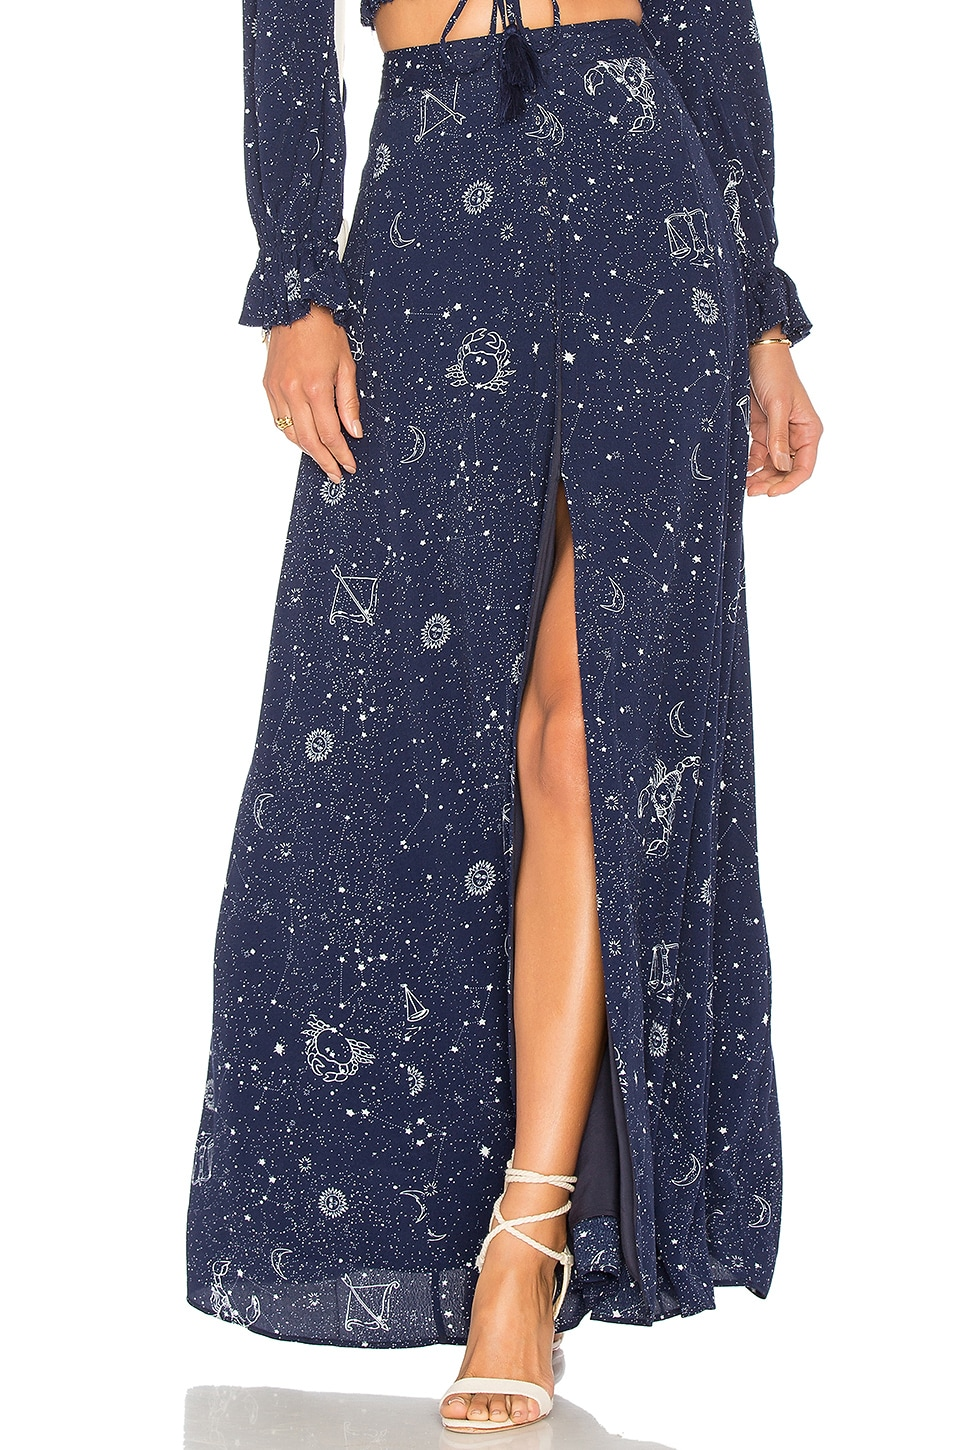 MAJORELLE Sunday Skirt in Comet